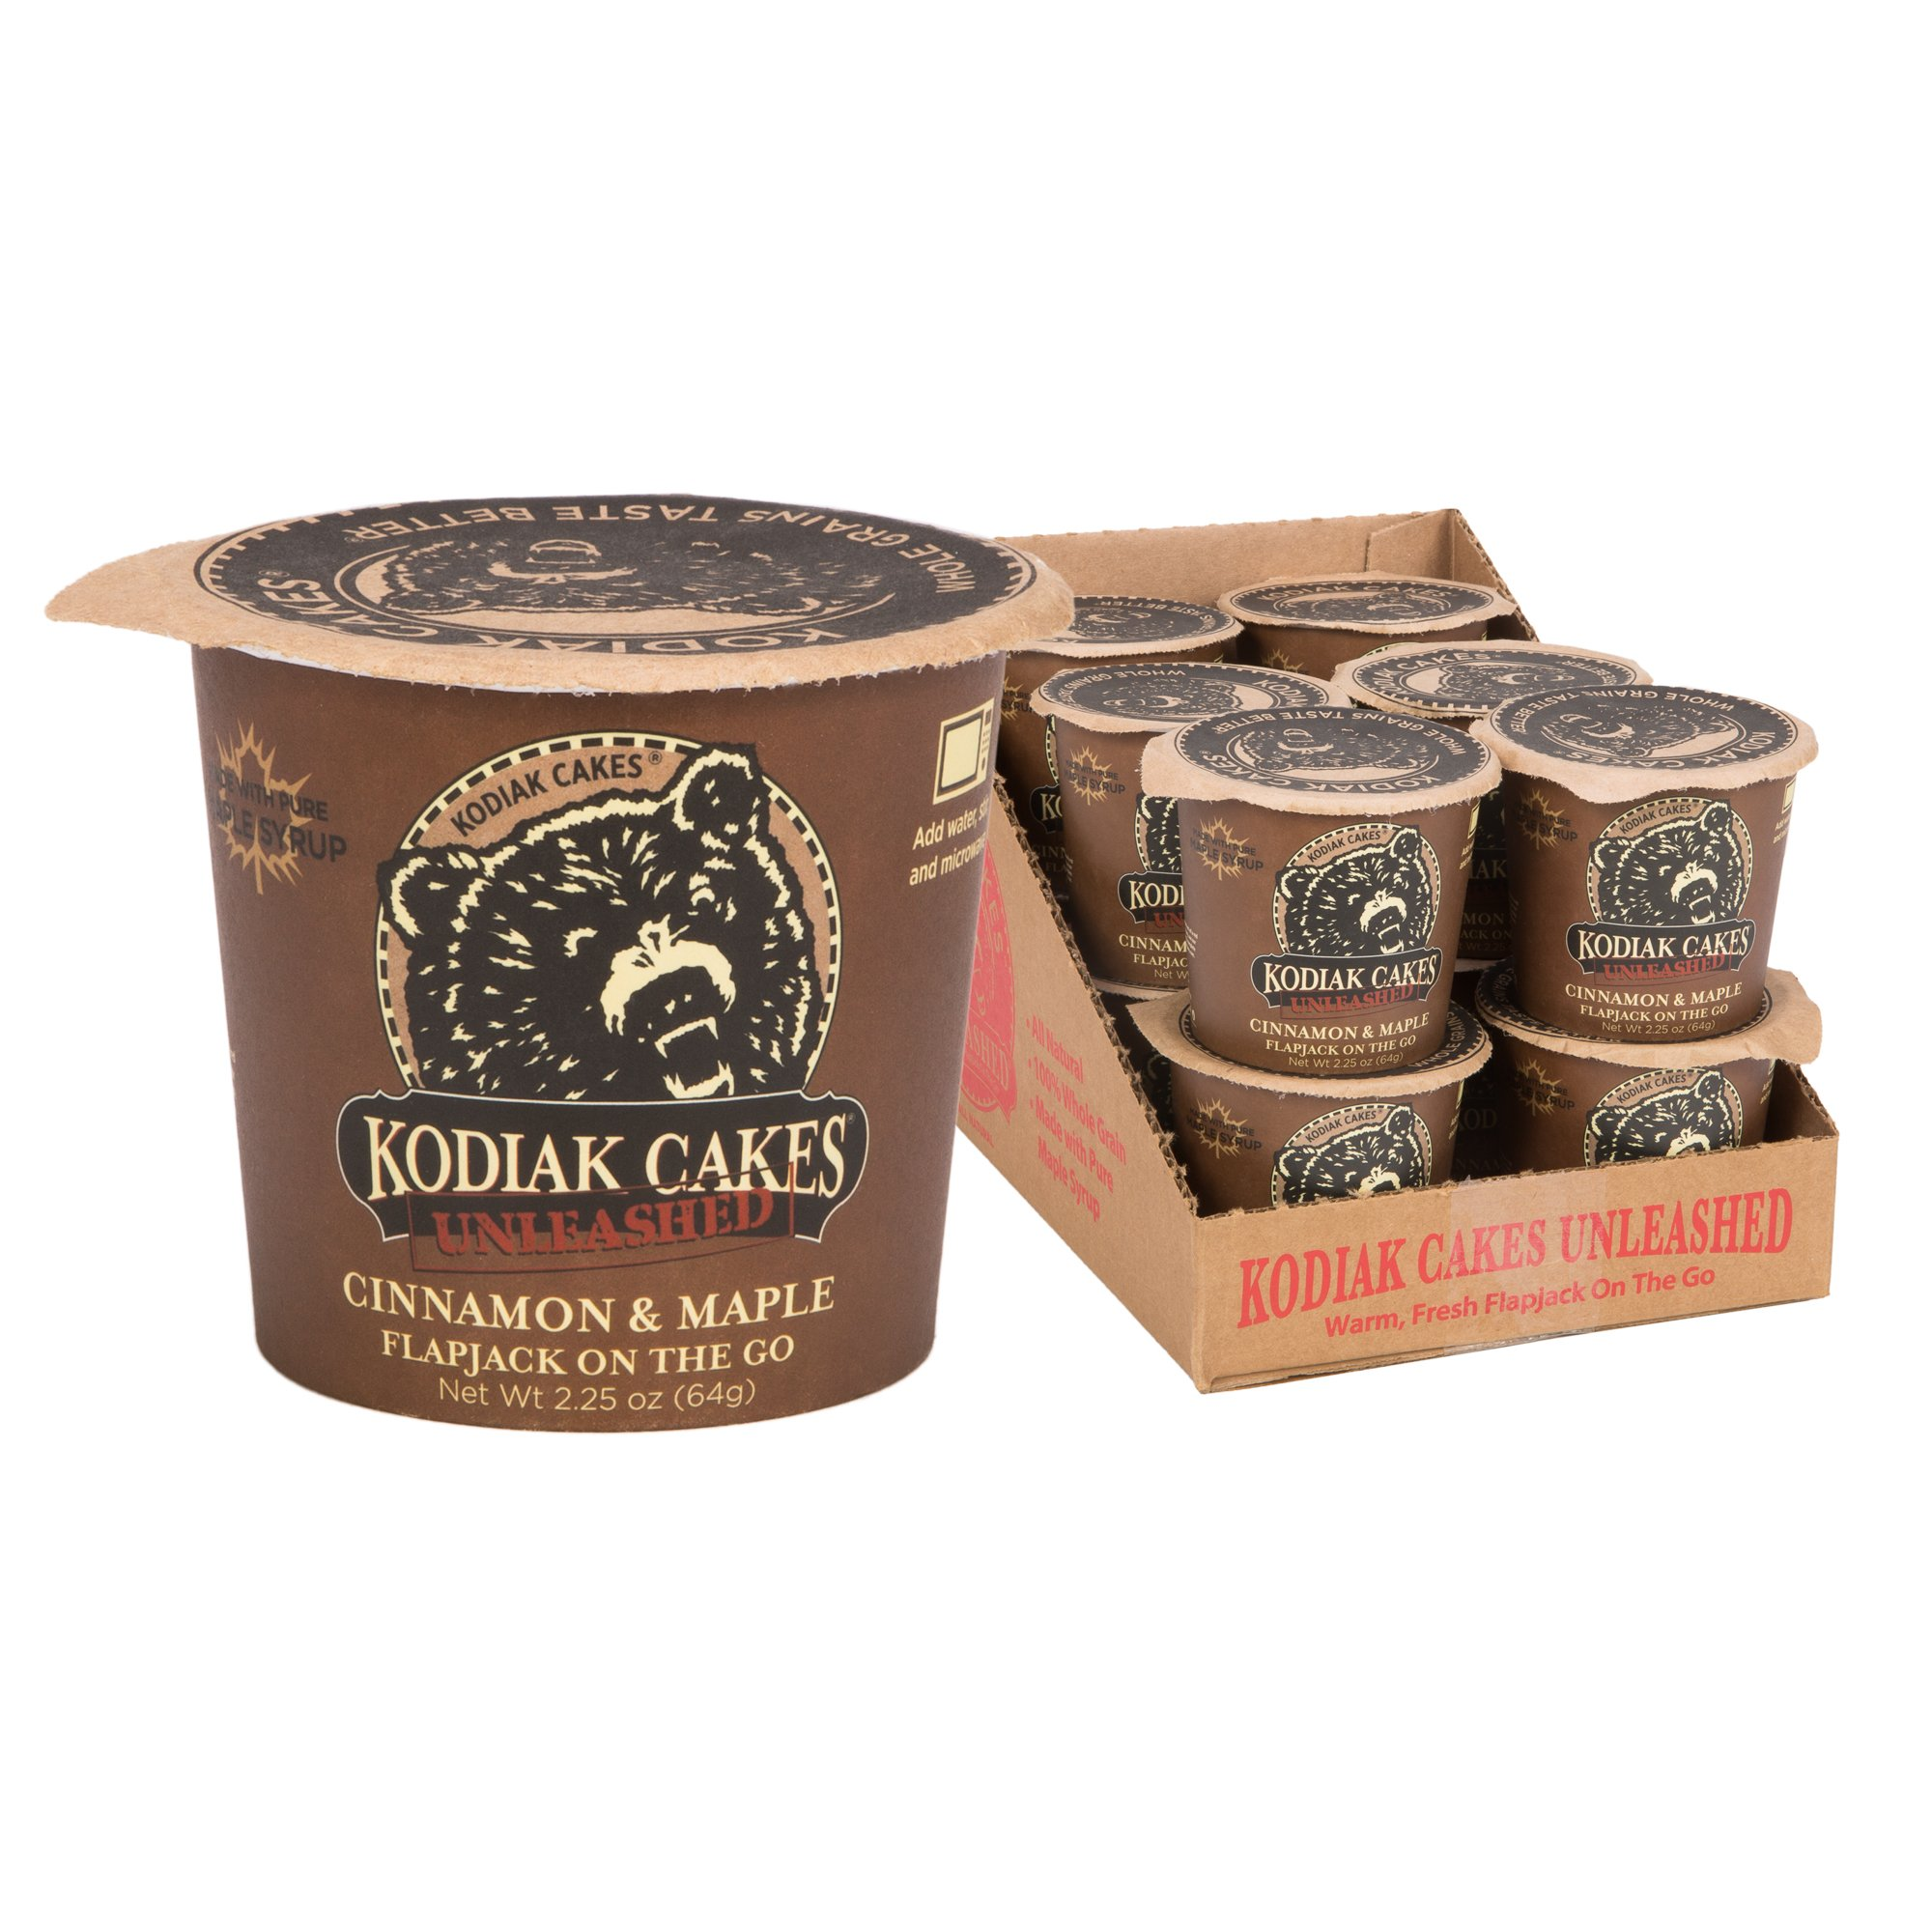 Kodiak Cakes Pancake On the Go High Protein Snack, Cinnamon and Maple, 2.25 Ounce (Pack of 12)